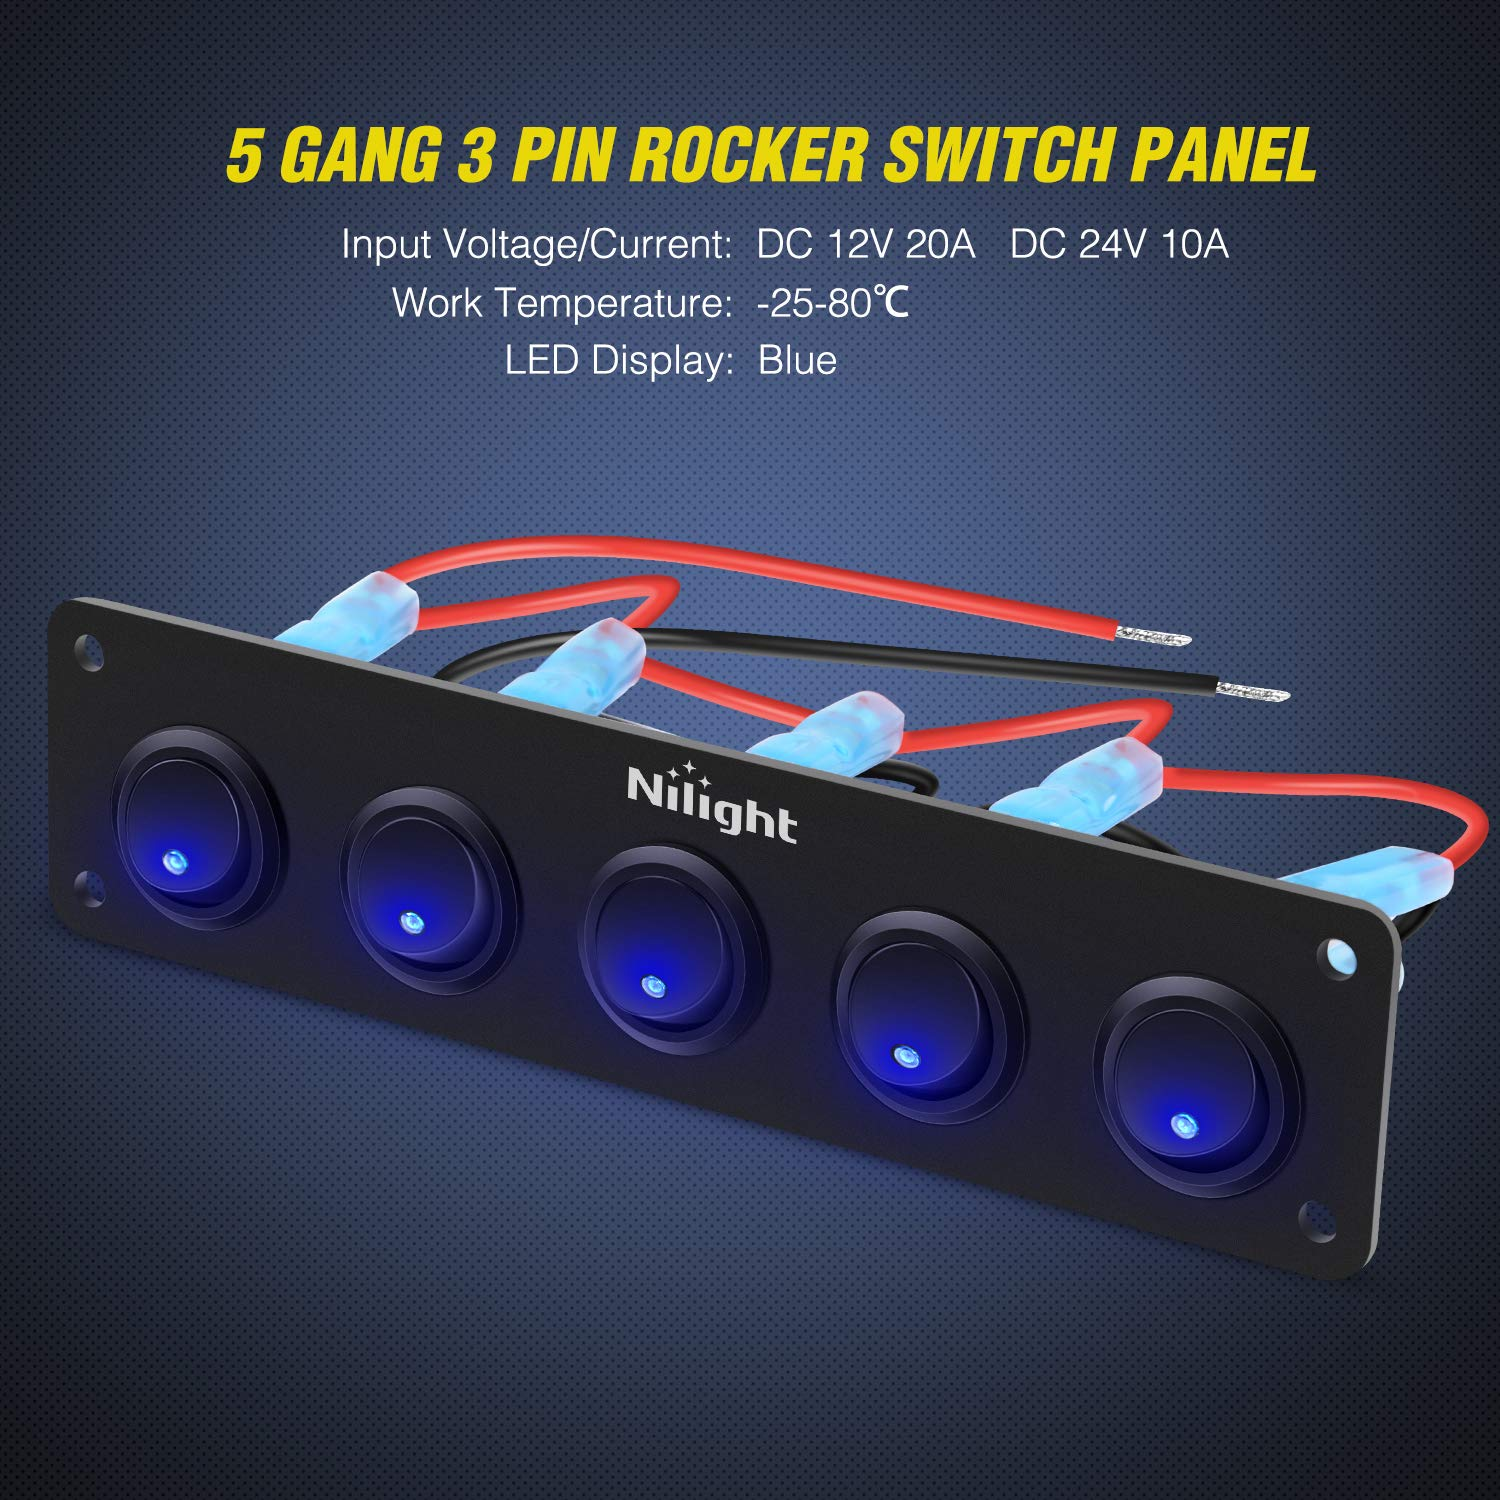 Nilight 5 Gang 3 Pin Rocker Switch Panel Waterproof On-Off Toggle Switches for Car Vehicle Trailer Truck SUV Marine Boat RV Ship 12V/24V 20A,2 Years Warranty